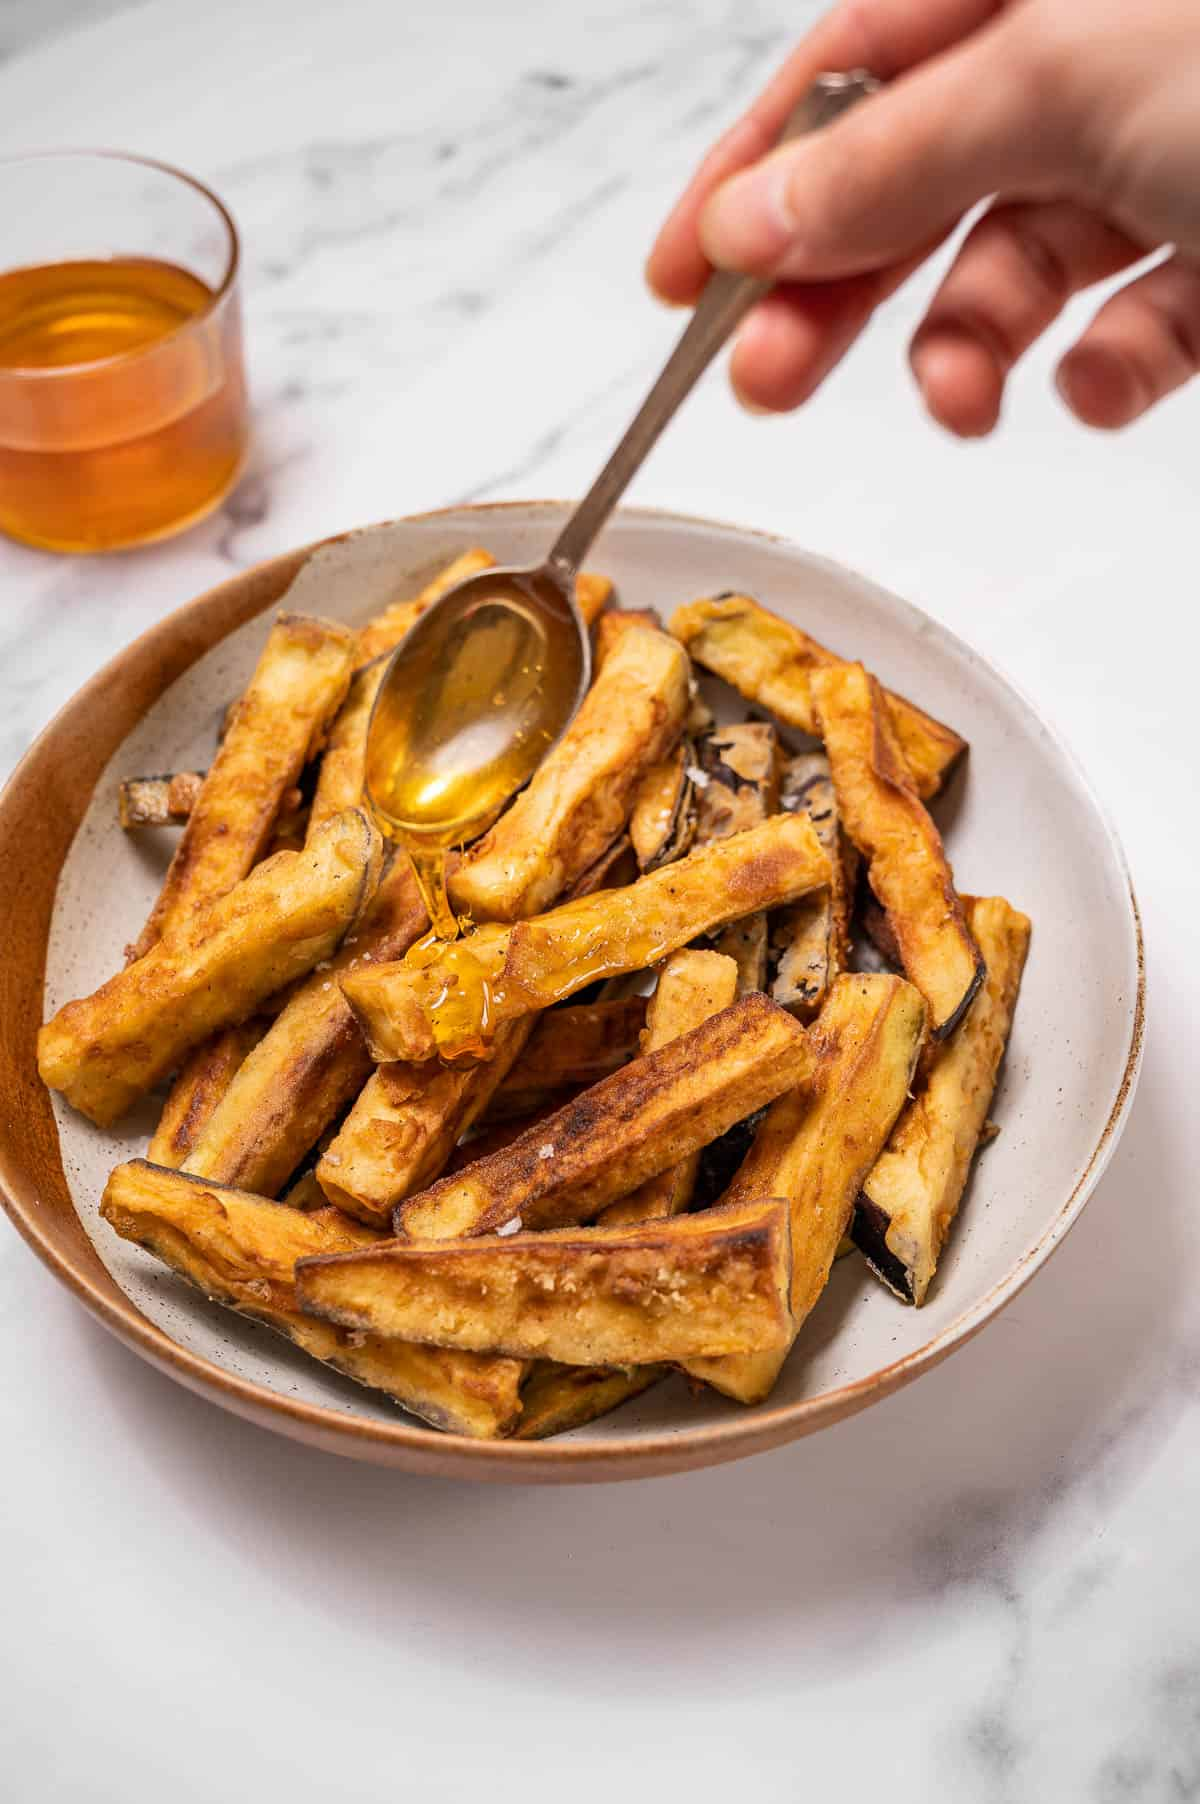 Fried eggplant with honey being drizzled on top